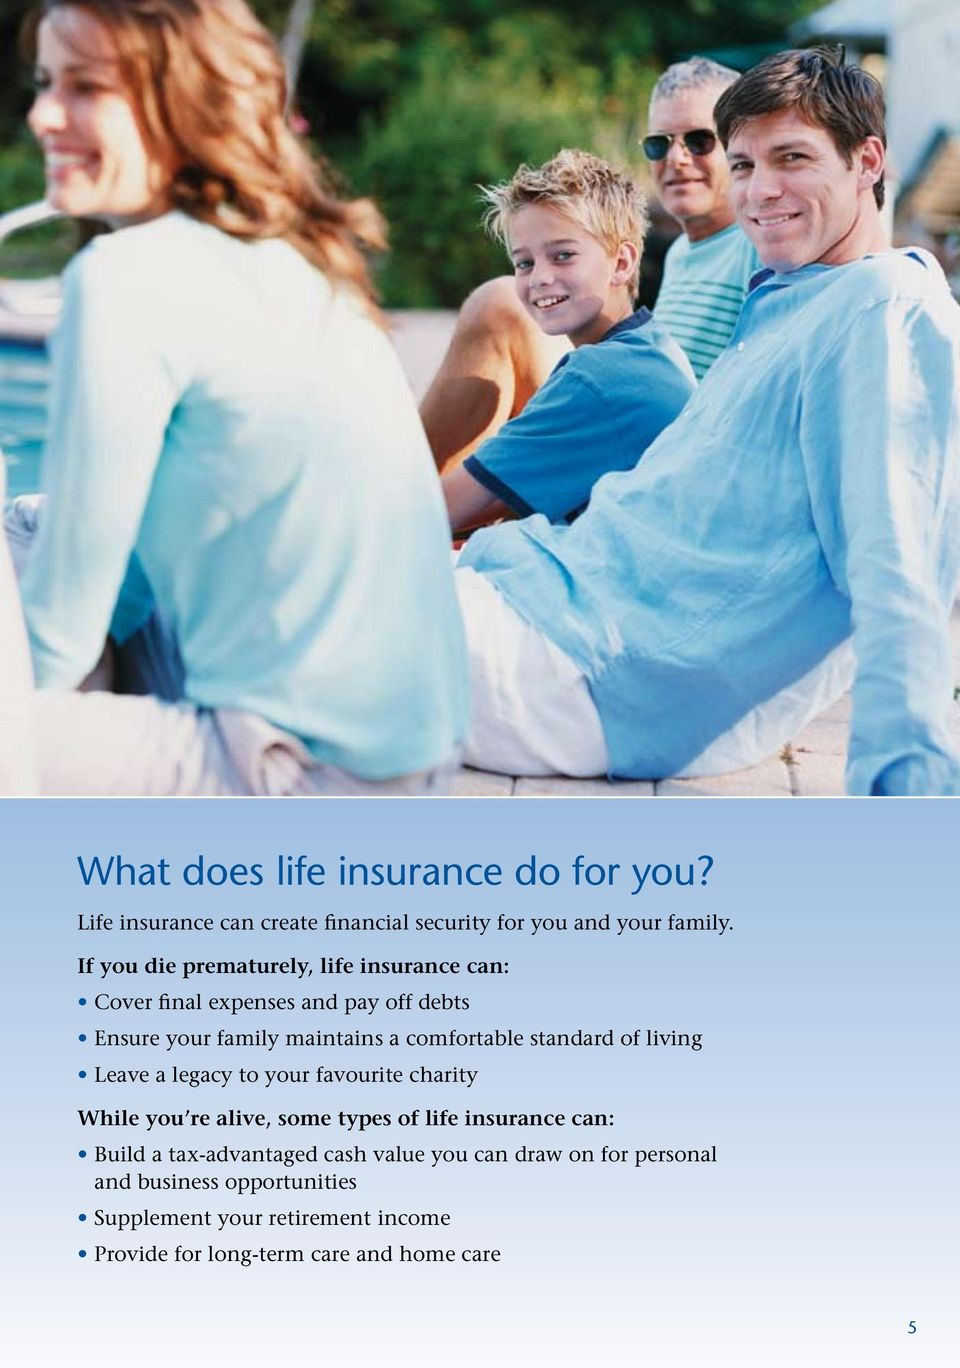 standard of living Leave a legacy to your favourite charity While you re alive, some types of life insurance can: Build a